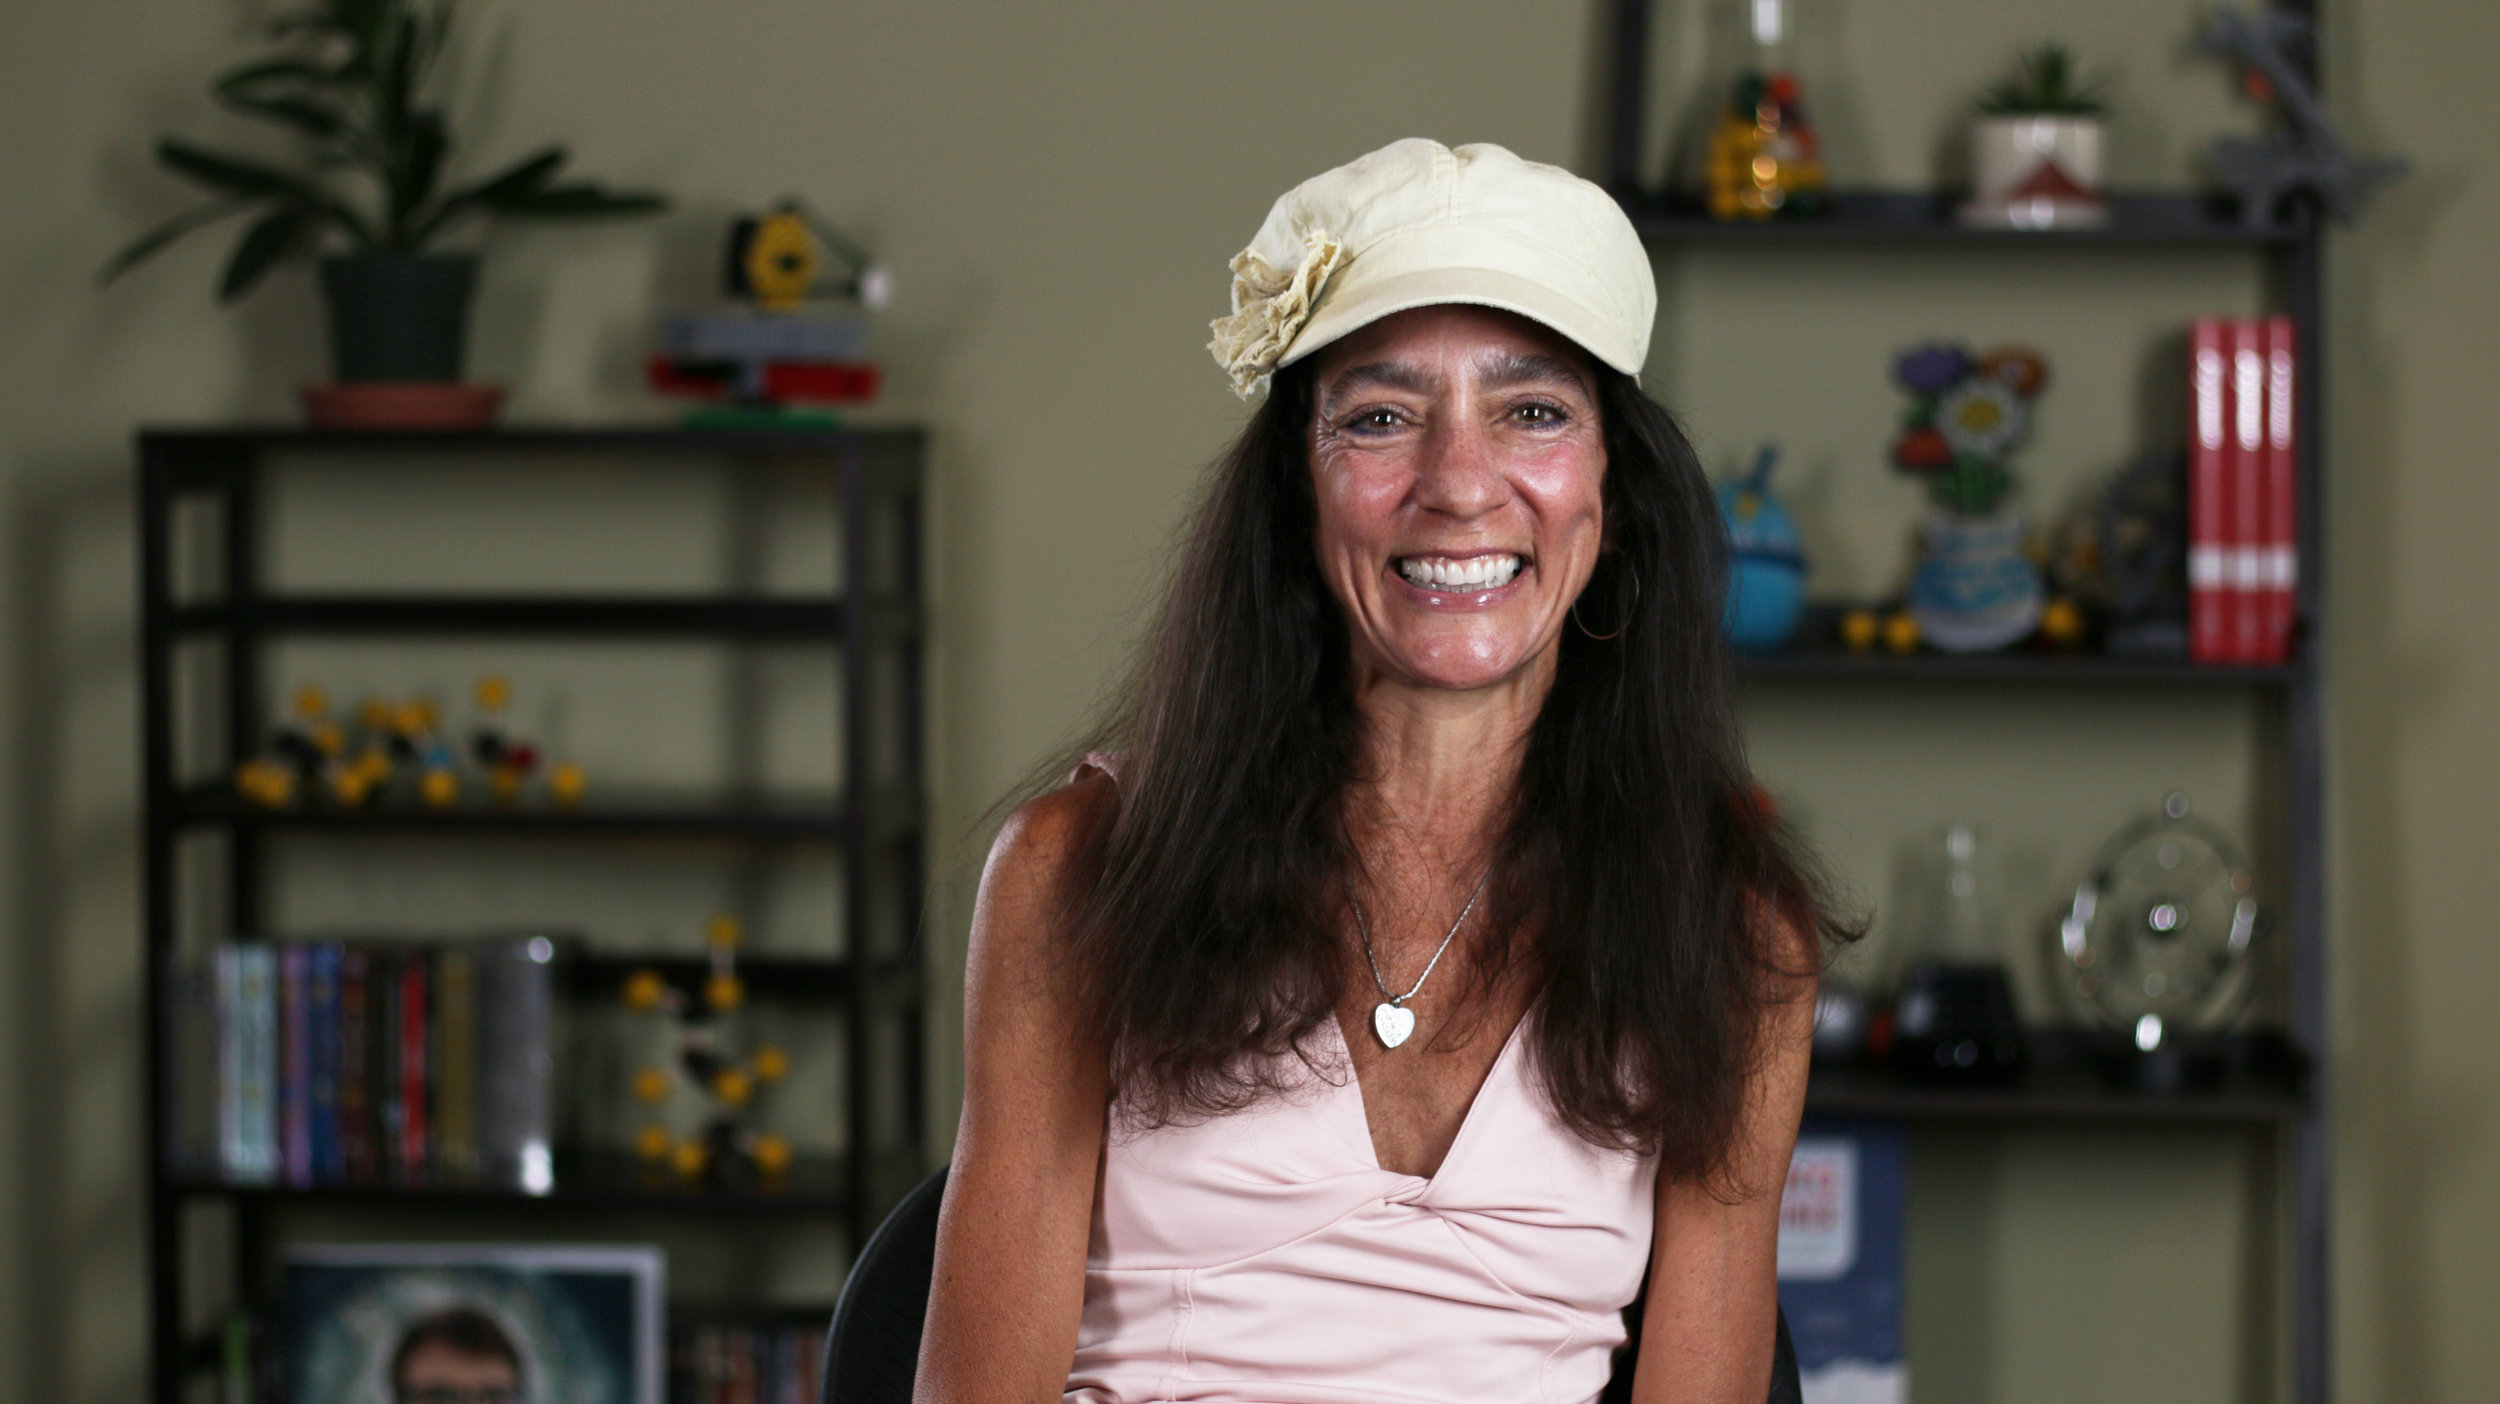 Rita Cerasoli Finance Manager  Rita is the Finance Manager for Complexly and VidCon. In her free time, she enjoys being active.... running, biking, hiking, and practicing Bikram yoga. She has a passion for cooking and entertaining with friends. Some of her favorite things: the mountains, the ocean, full moons, wildflowers, red wine and dark chocolate, the Steelers and classic rock:-)